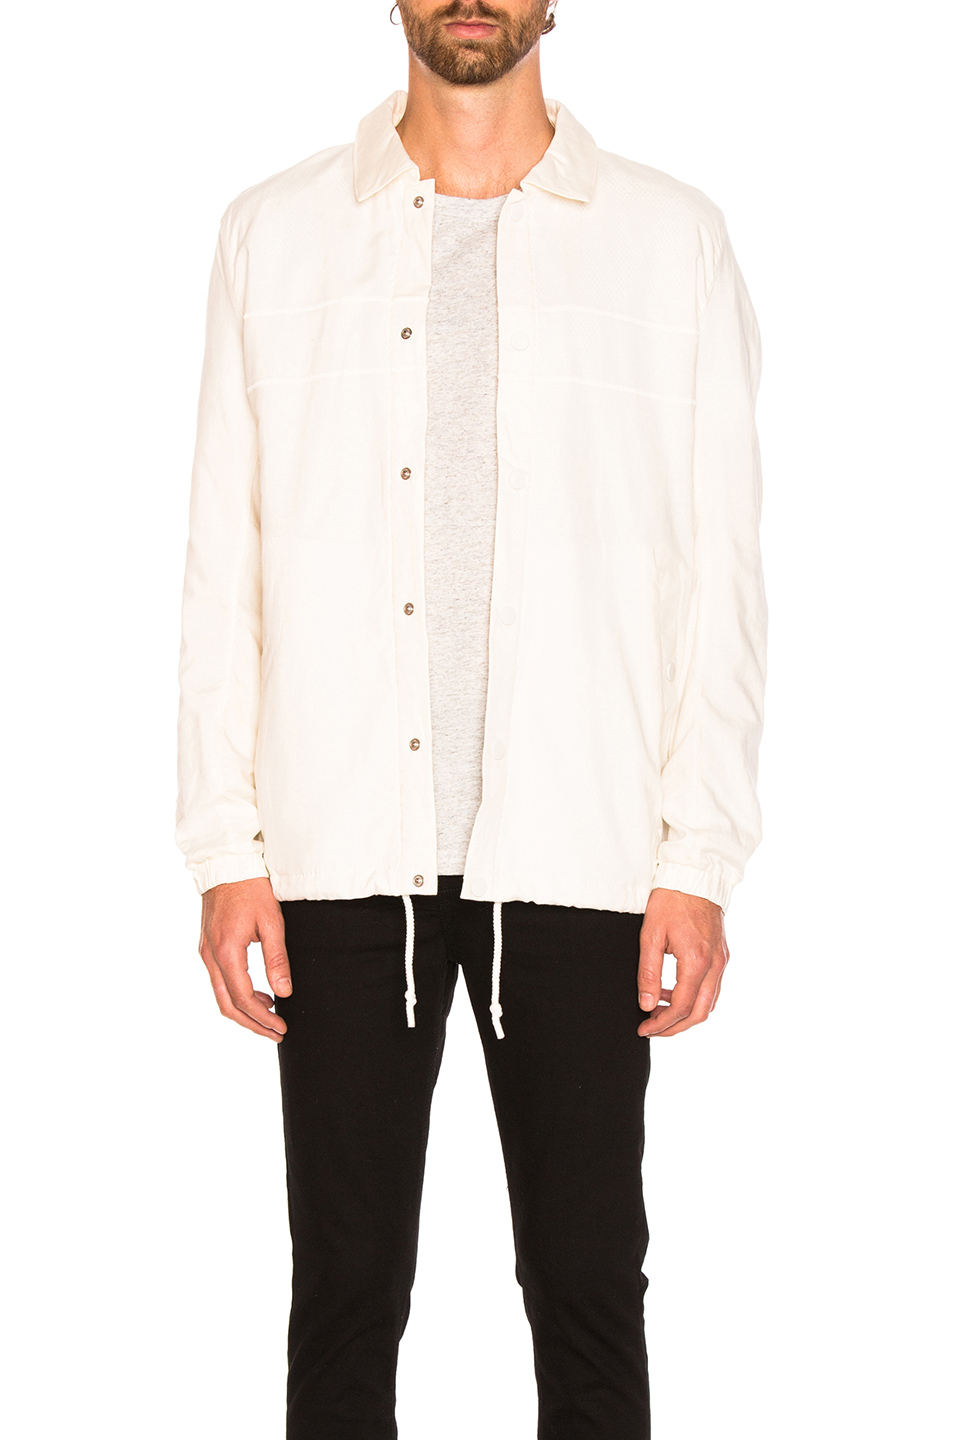 adidas by wings + horns Linen Coach Jacket in White